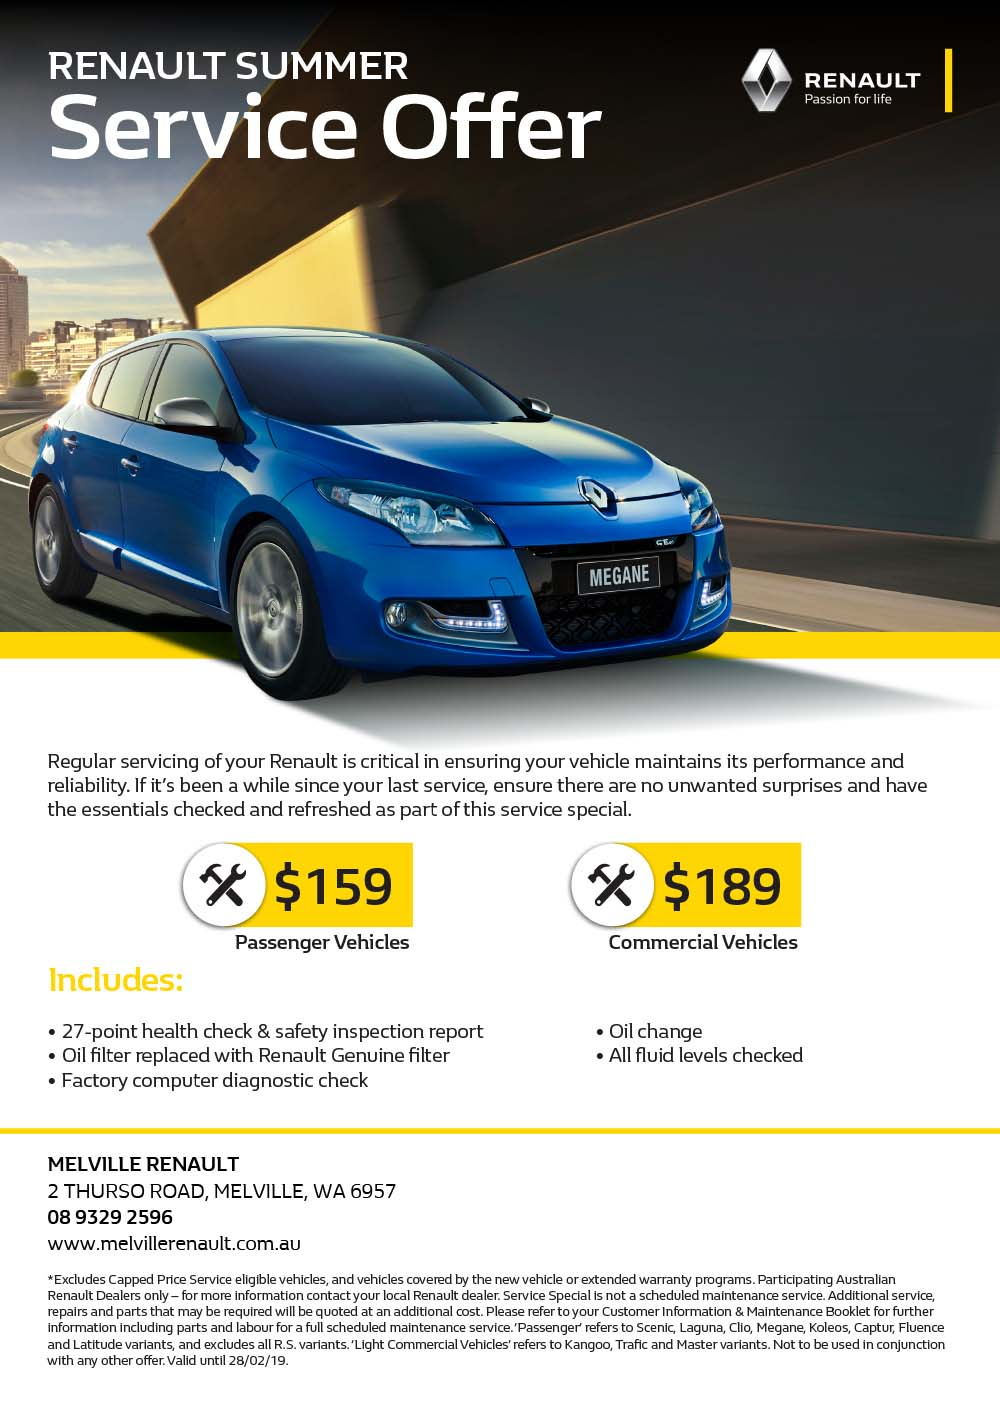 Renault Summer Service Offer